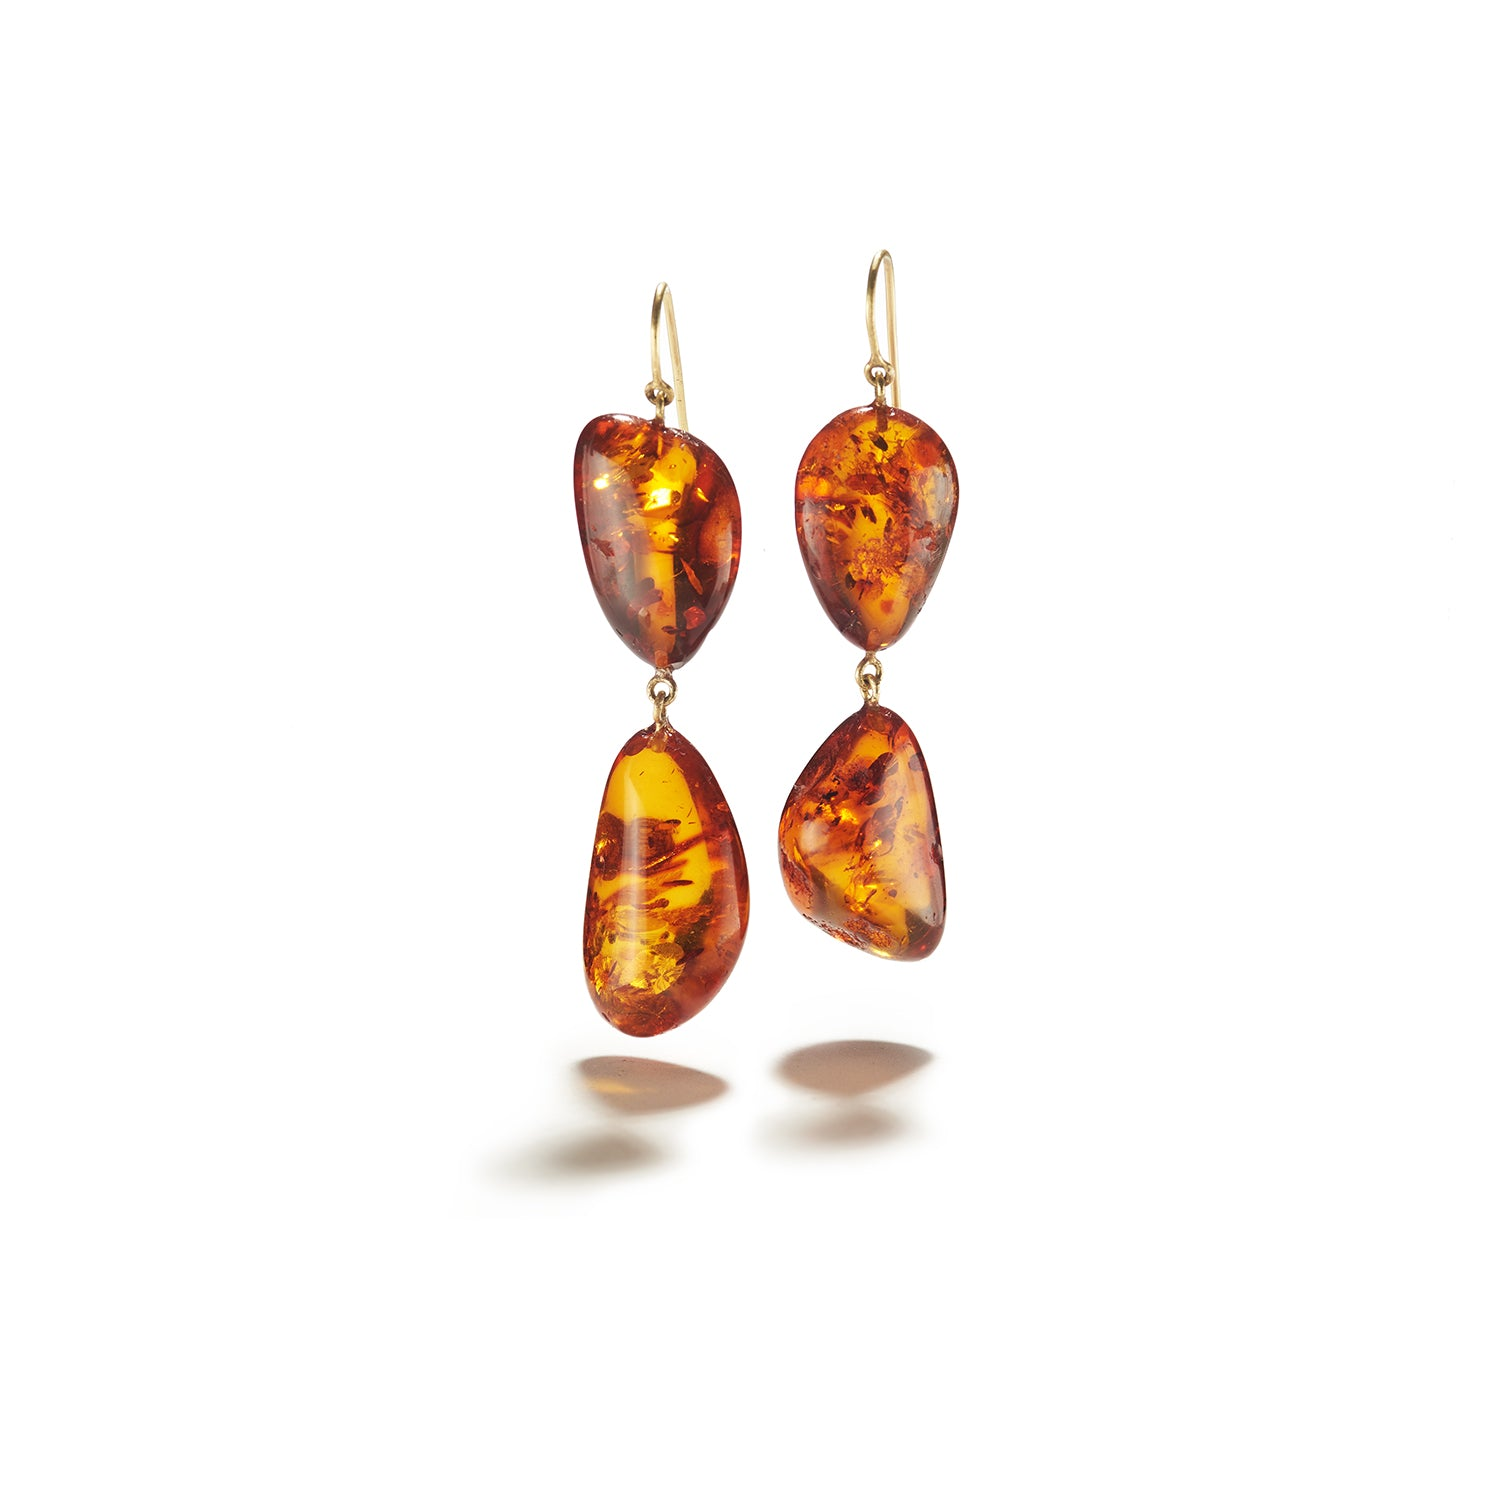 Cognac Amber on French Wire Earrings